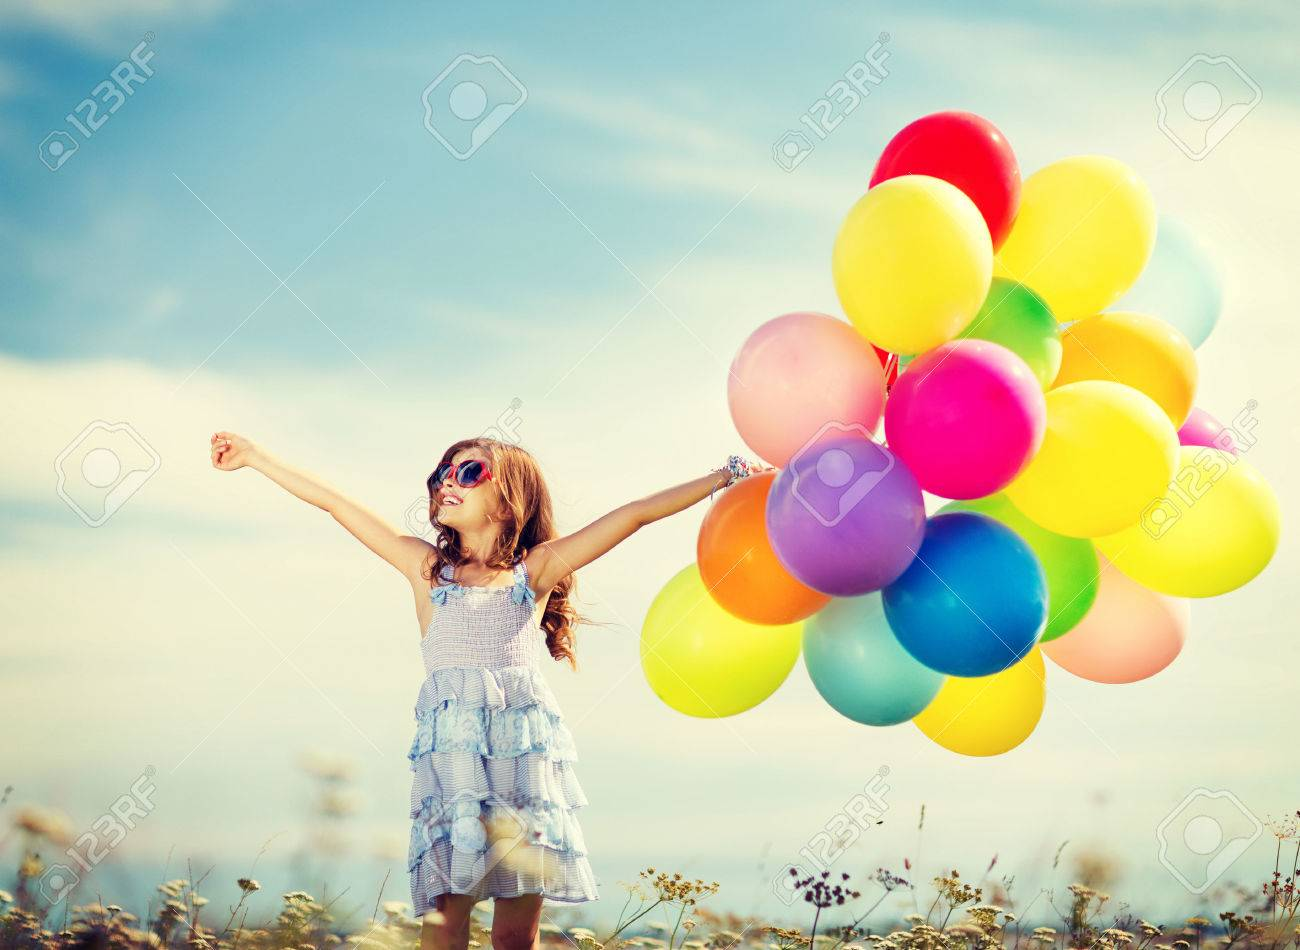 Happy Girl With Colorful Balloons Stock Photos - Image: 34602973